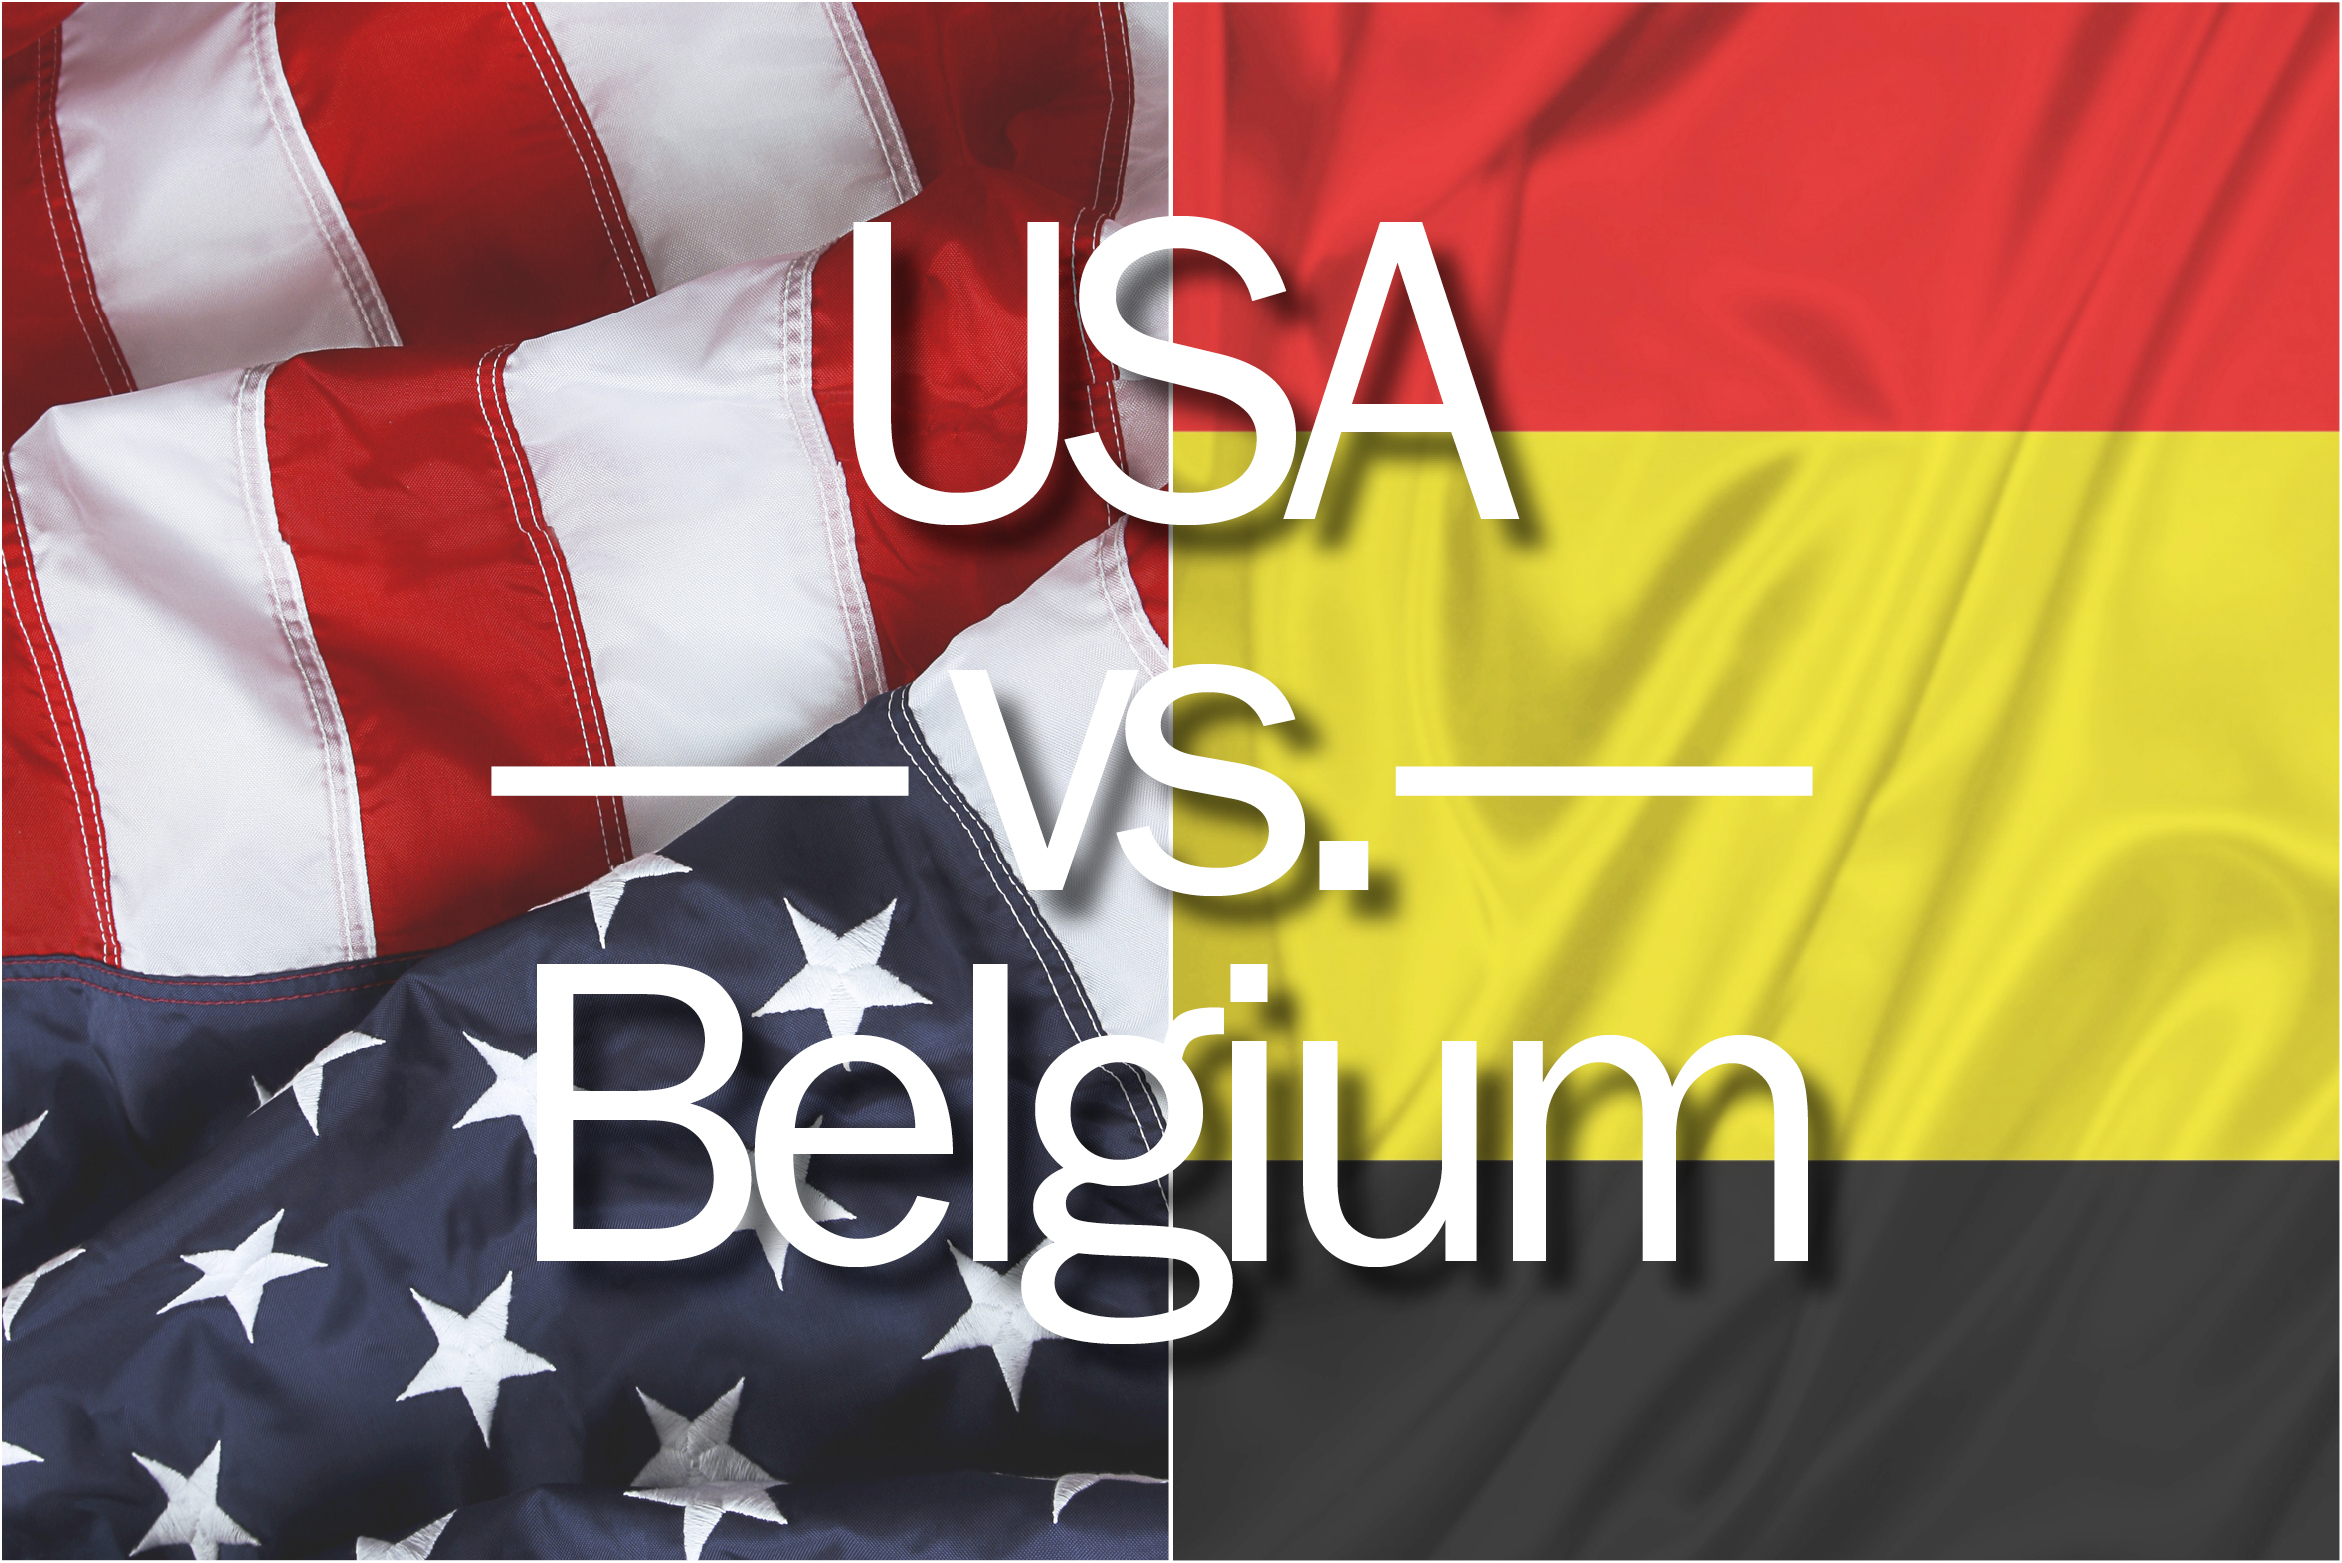 Where to Watch USA/Belgium in DFW